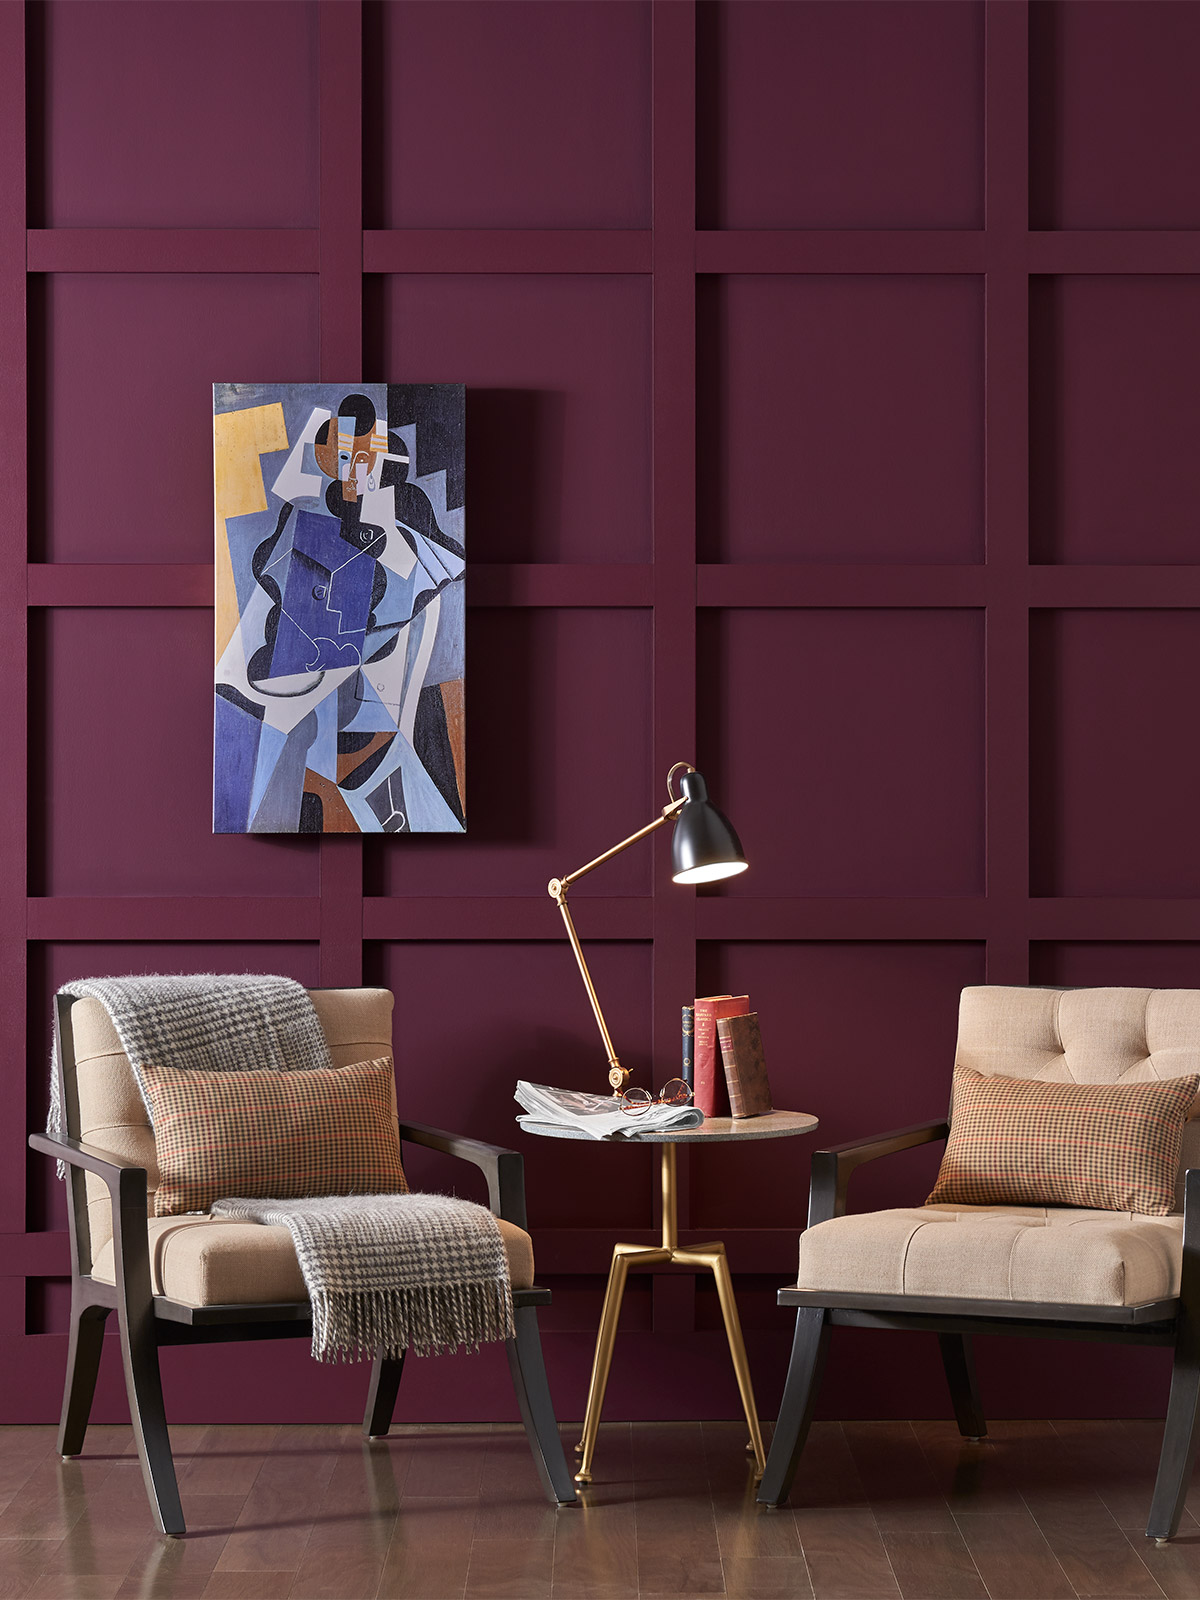 Sherwin-Williams 2019 Colormix Forecast - Aficionado